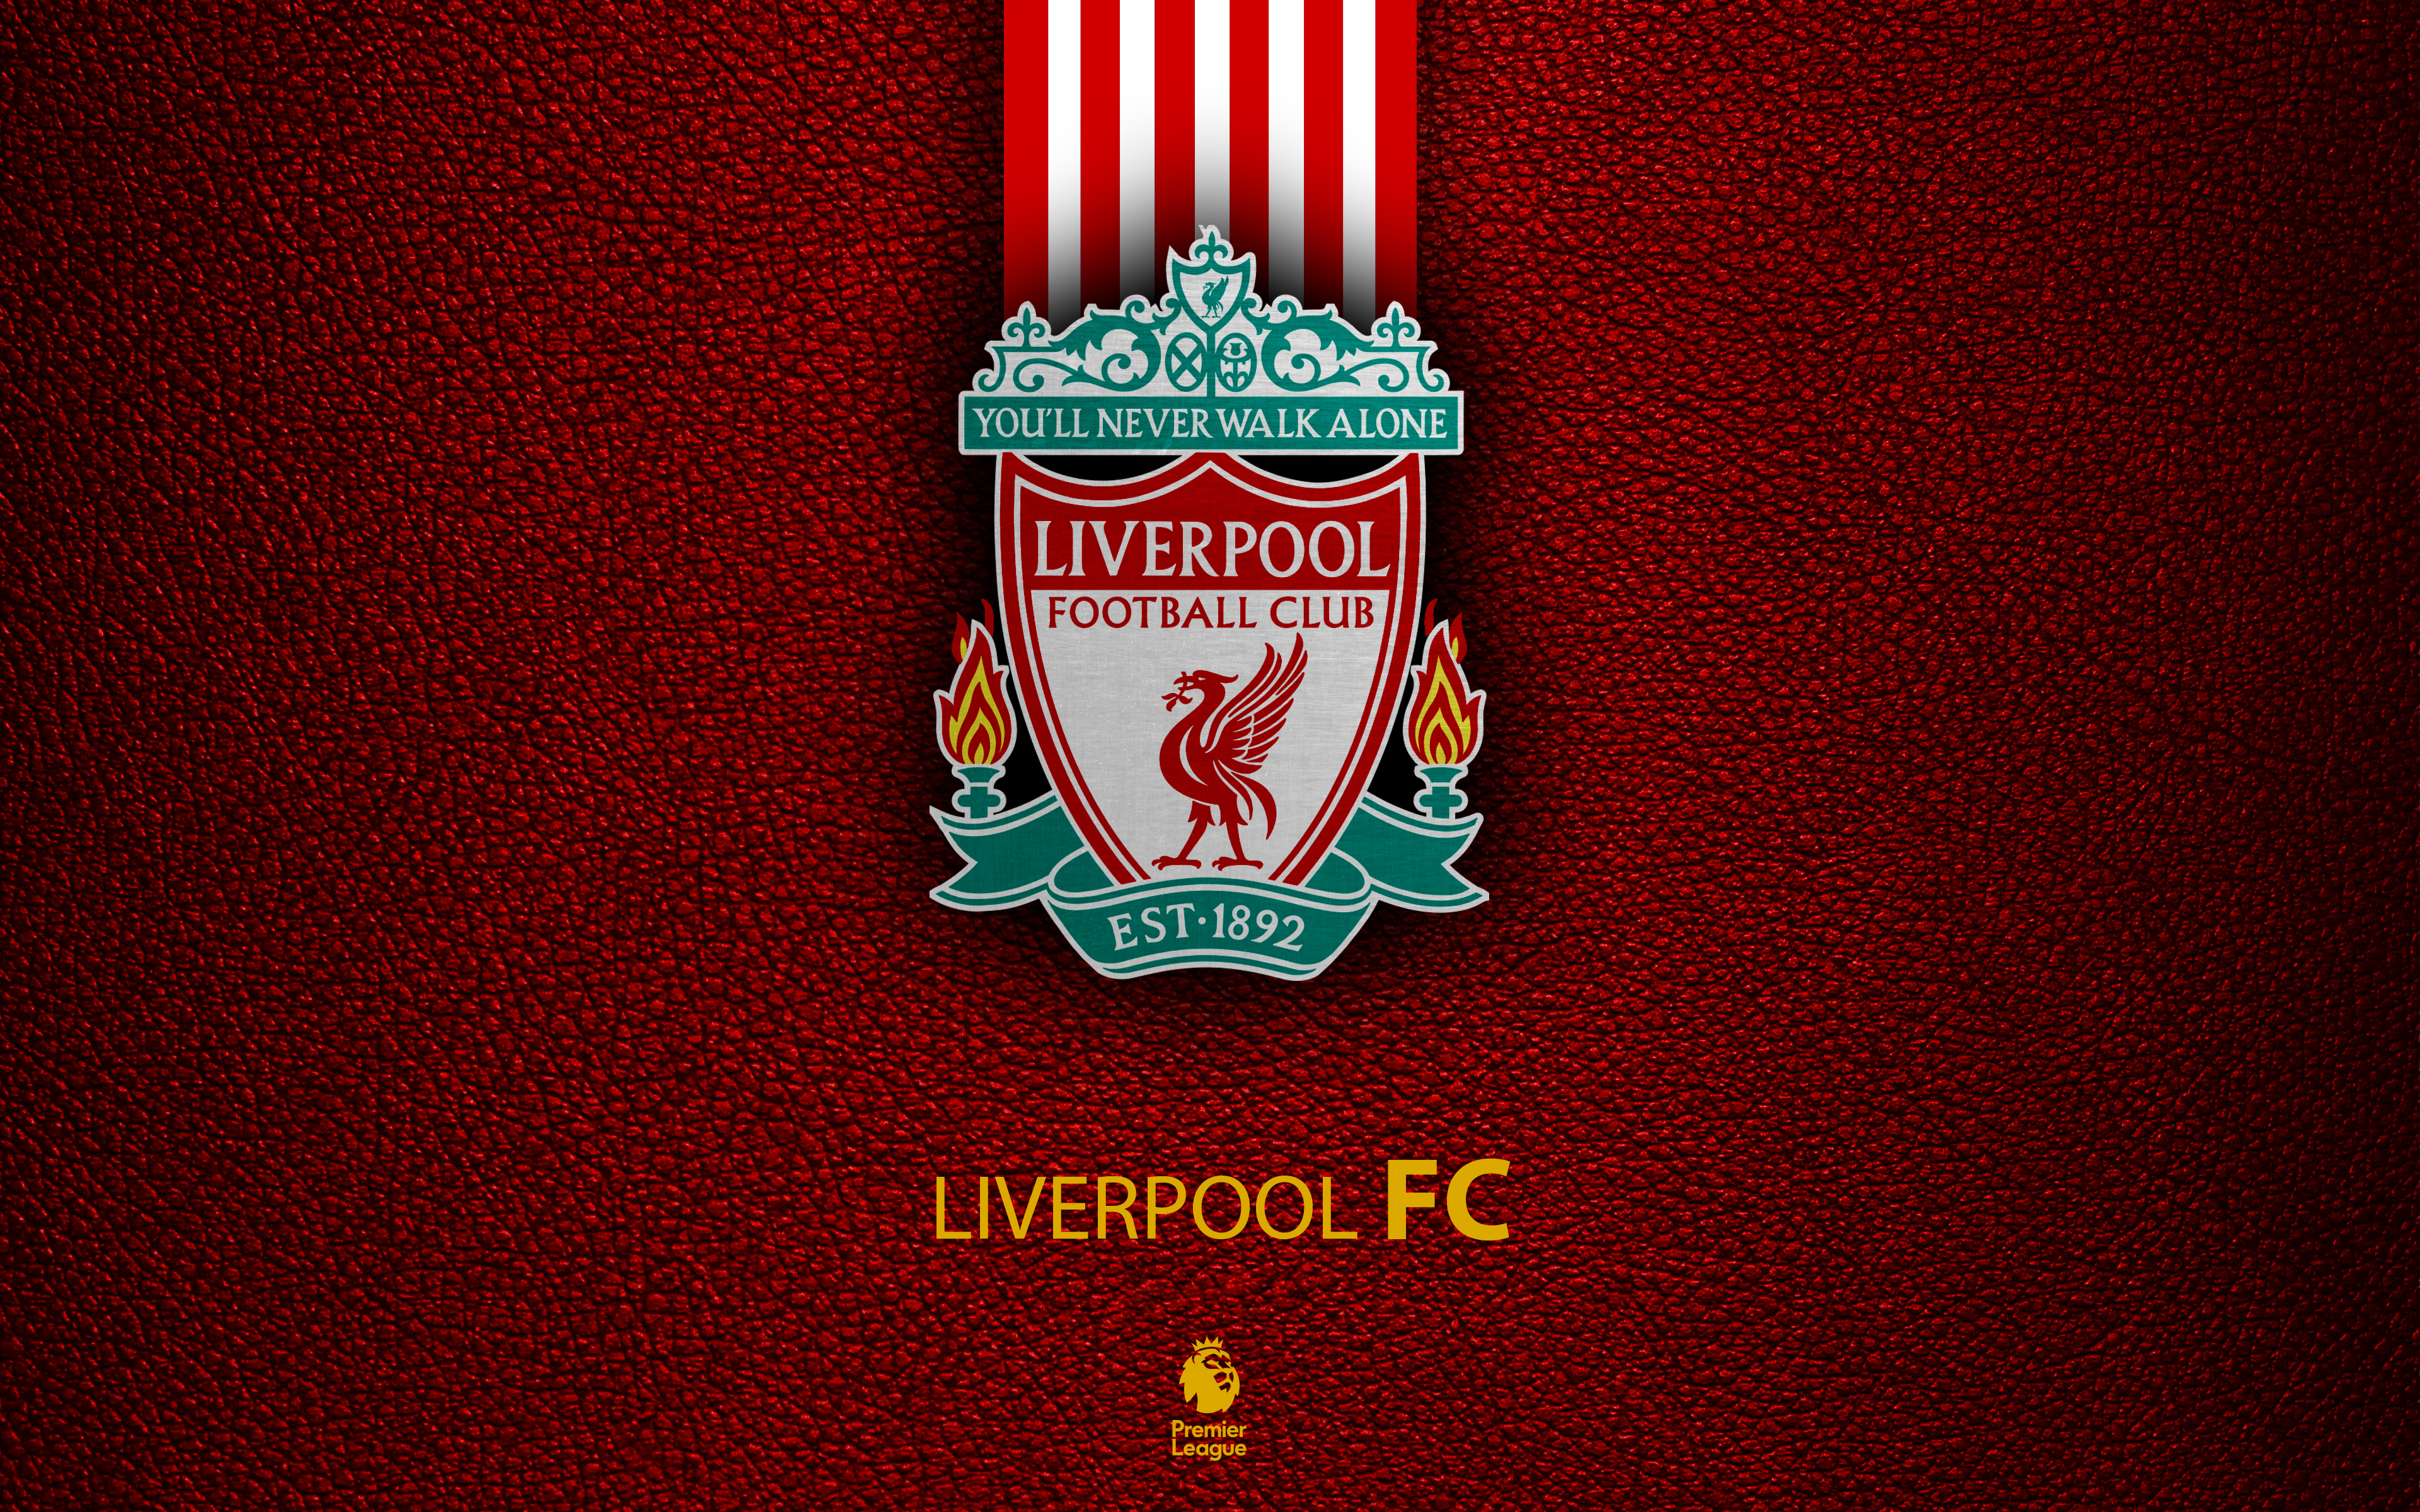 Liverpool Logo 4k Ultra HD Wallpaper